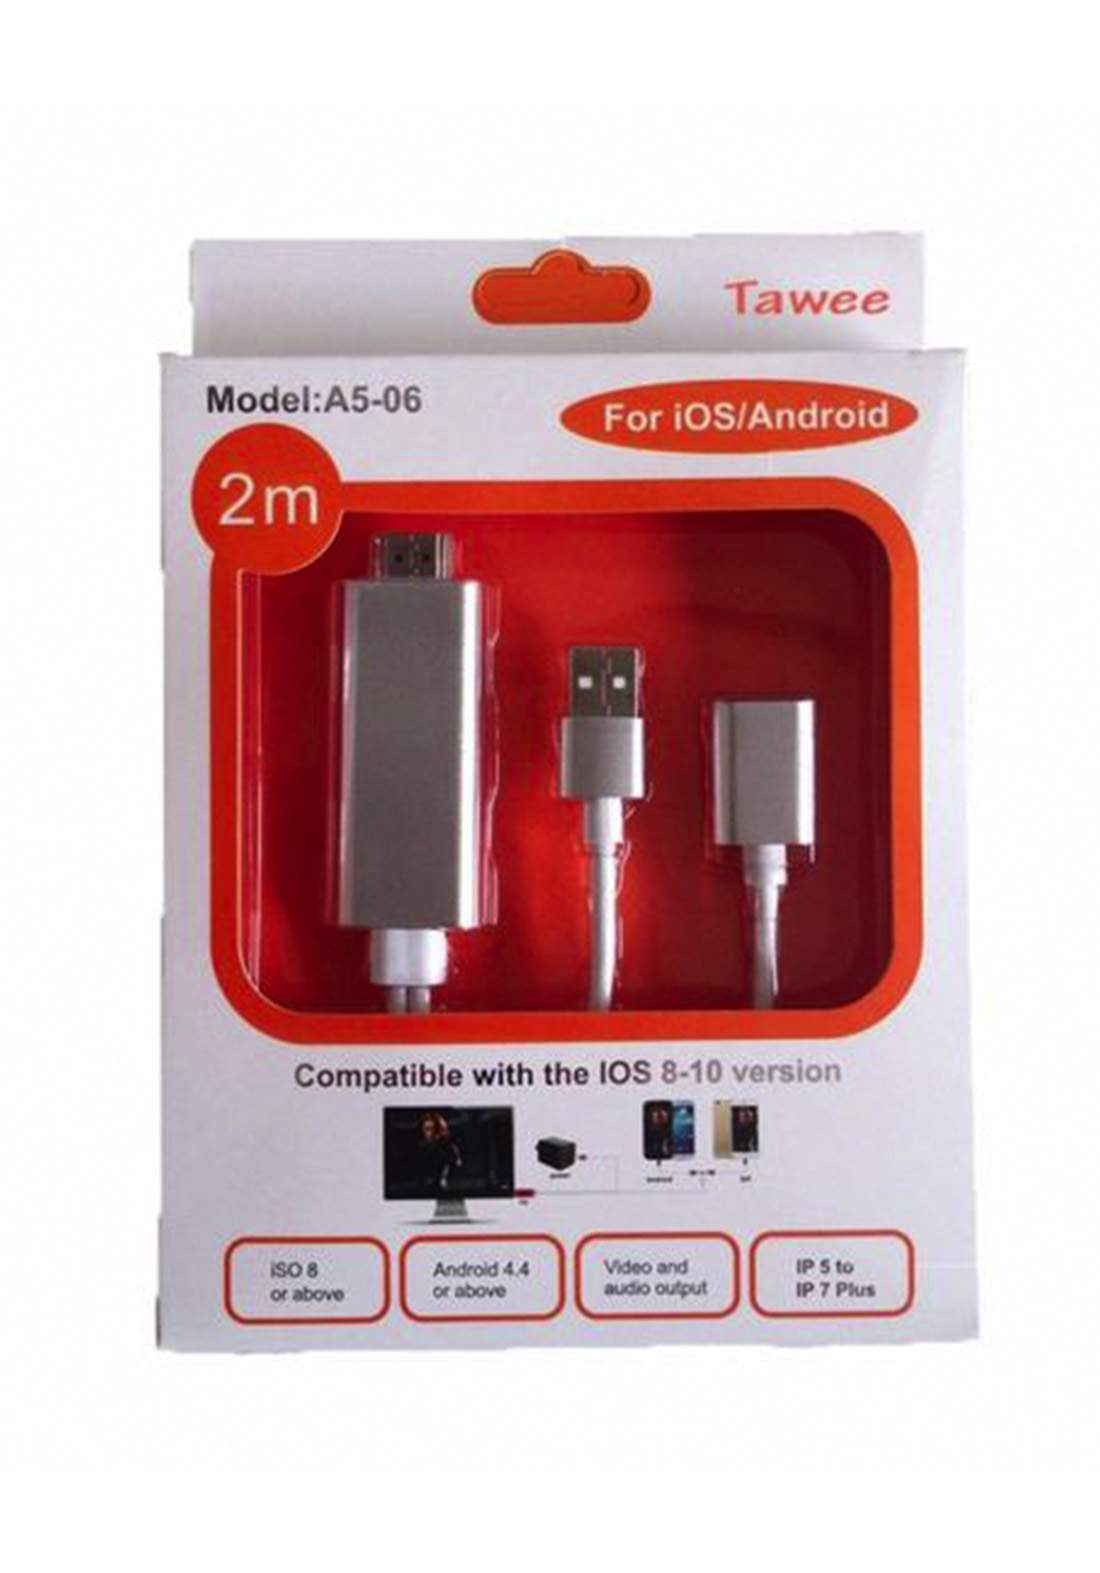 Tawee A5-06 Adpter Mobile For TV 2m - White كابل